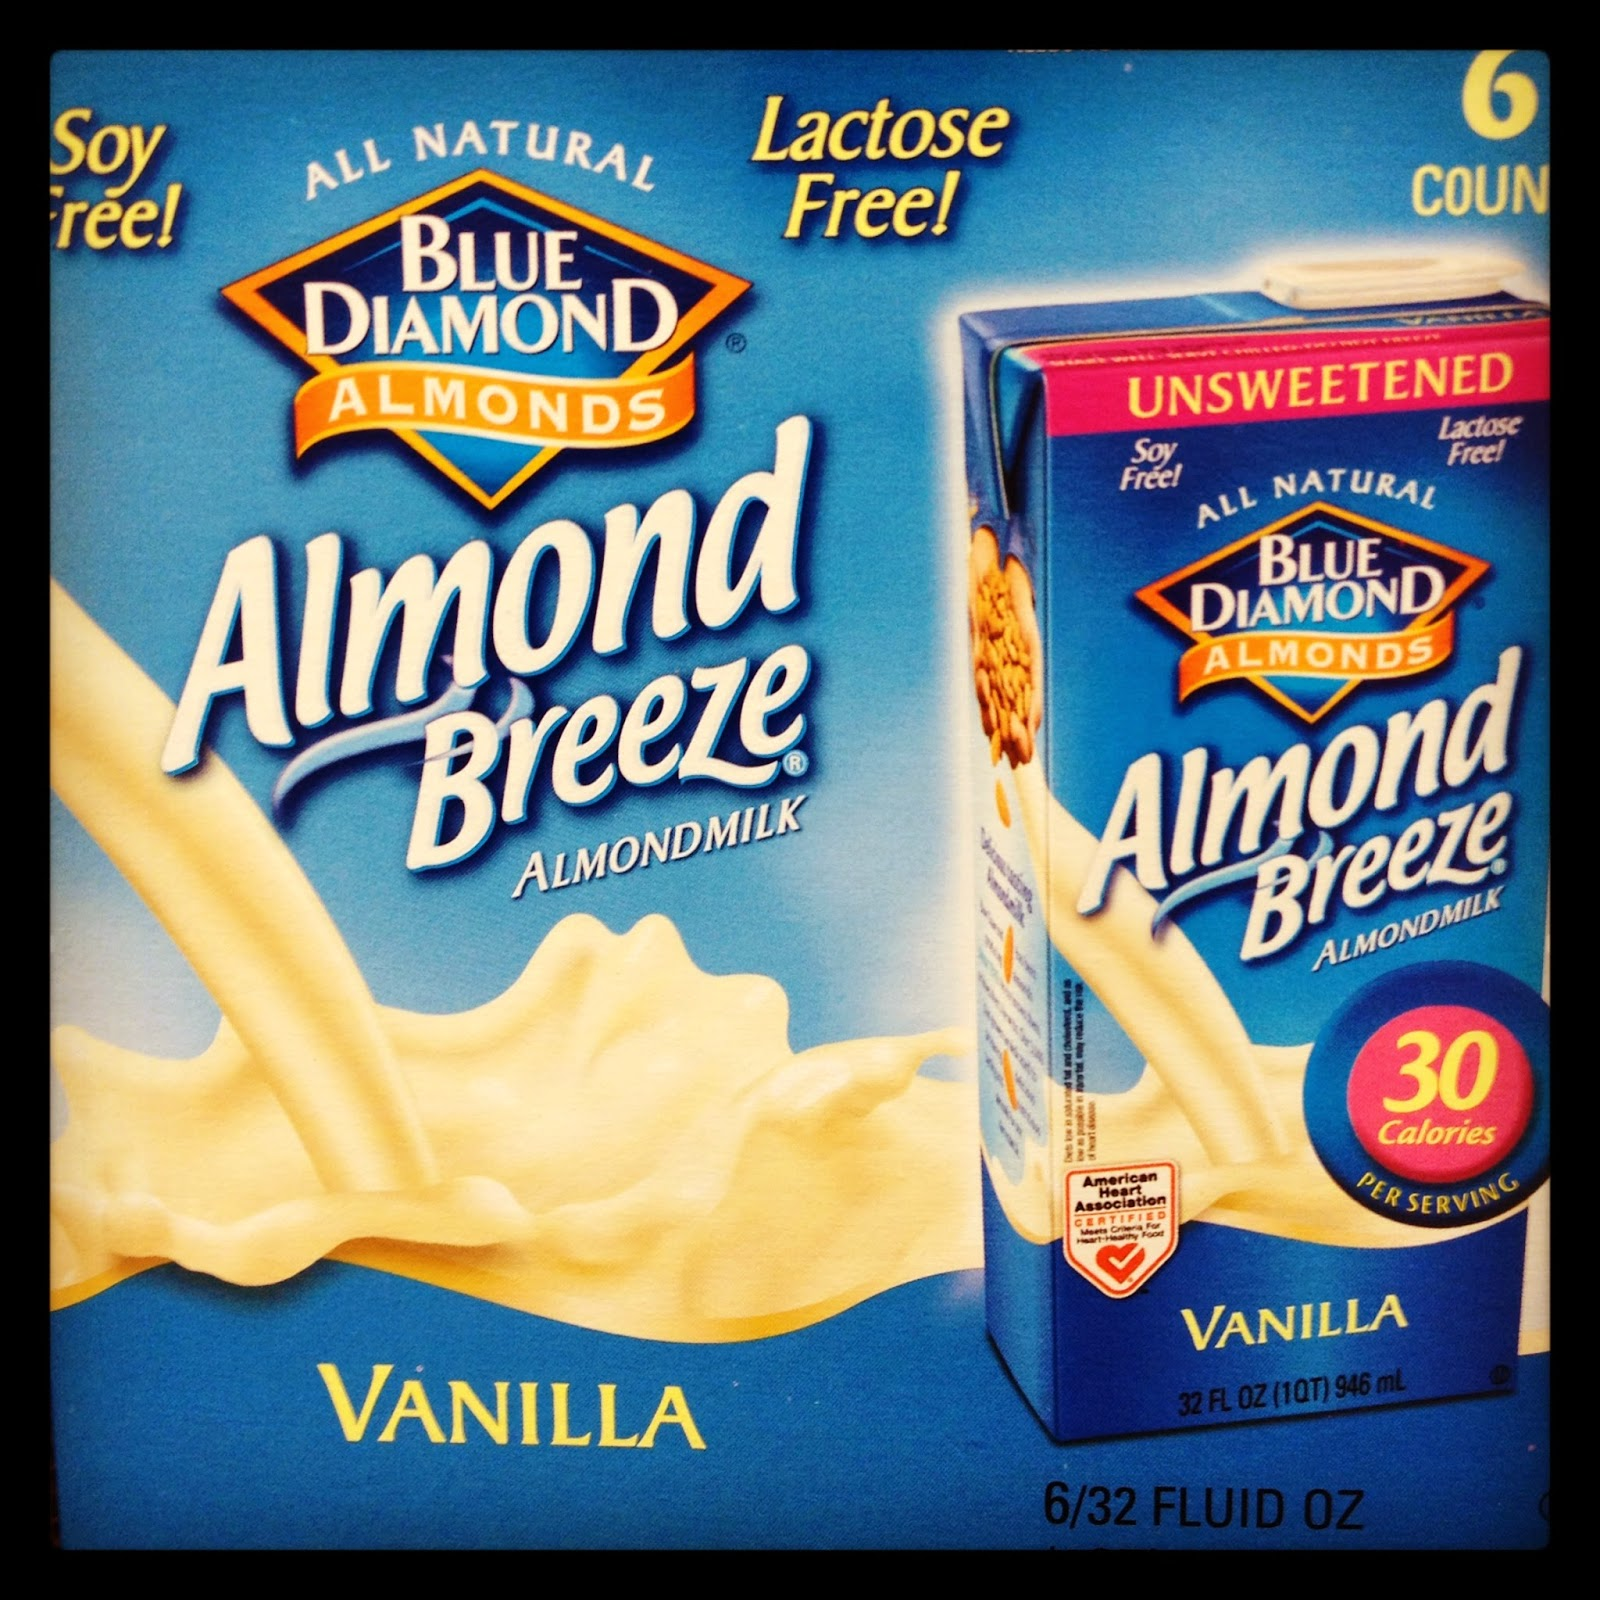 Unsweetened Vanilla Almond Breeze Almond Milk Vegan Costco